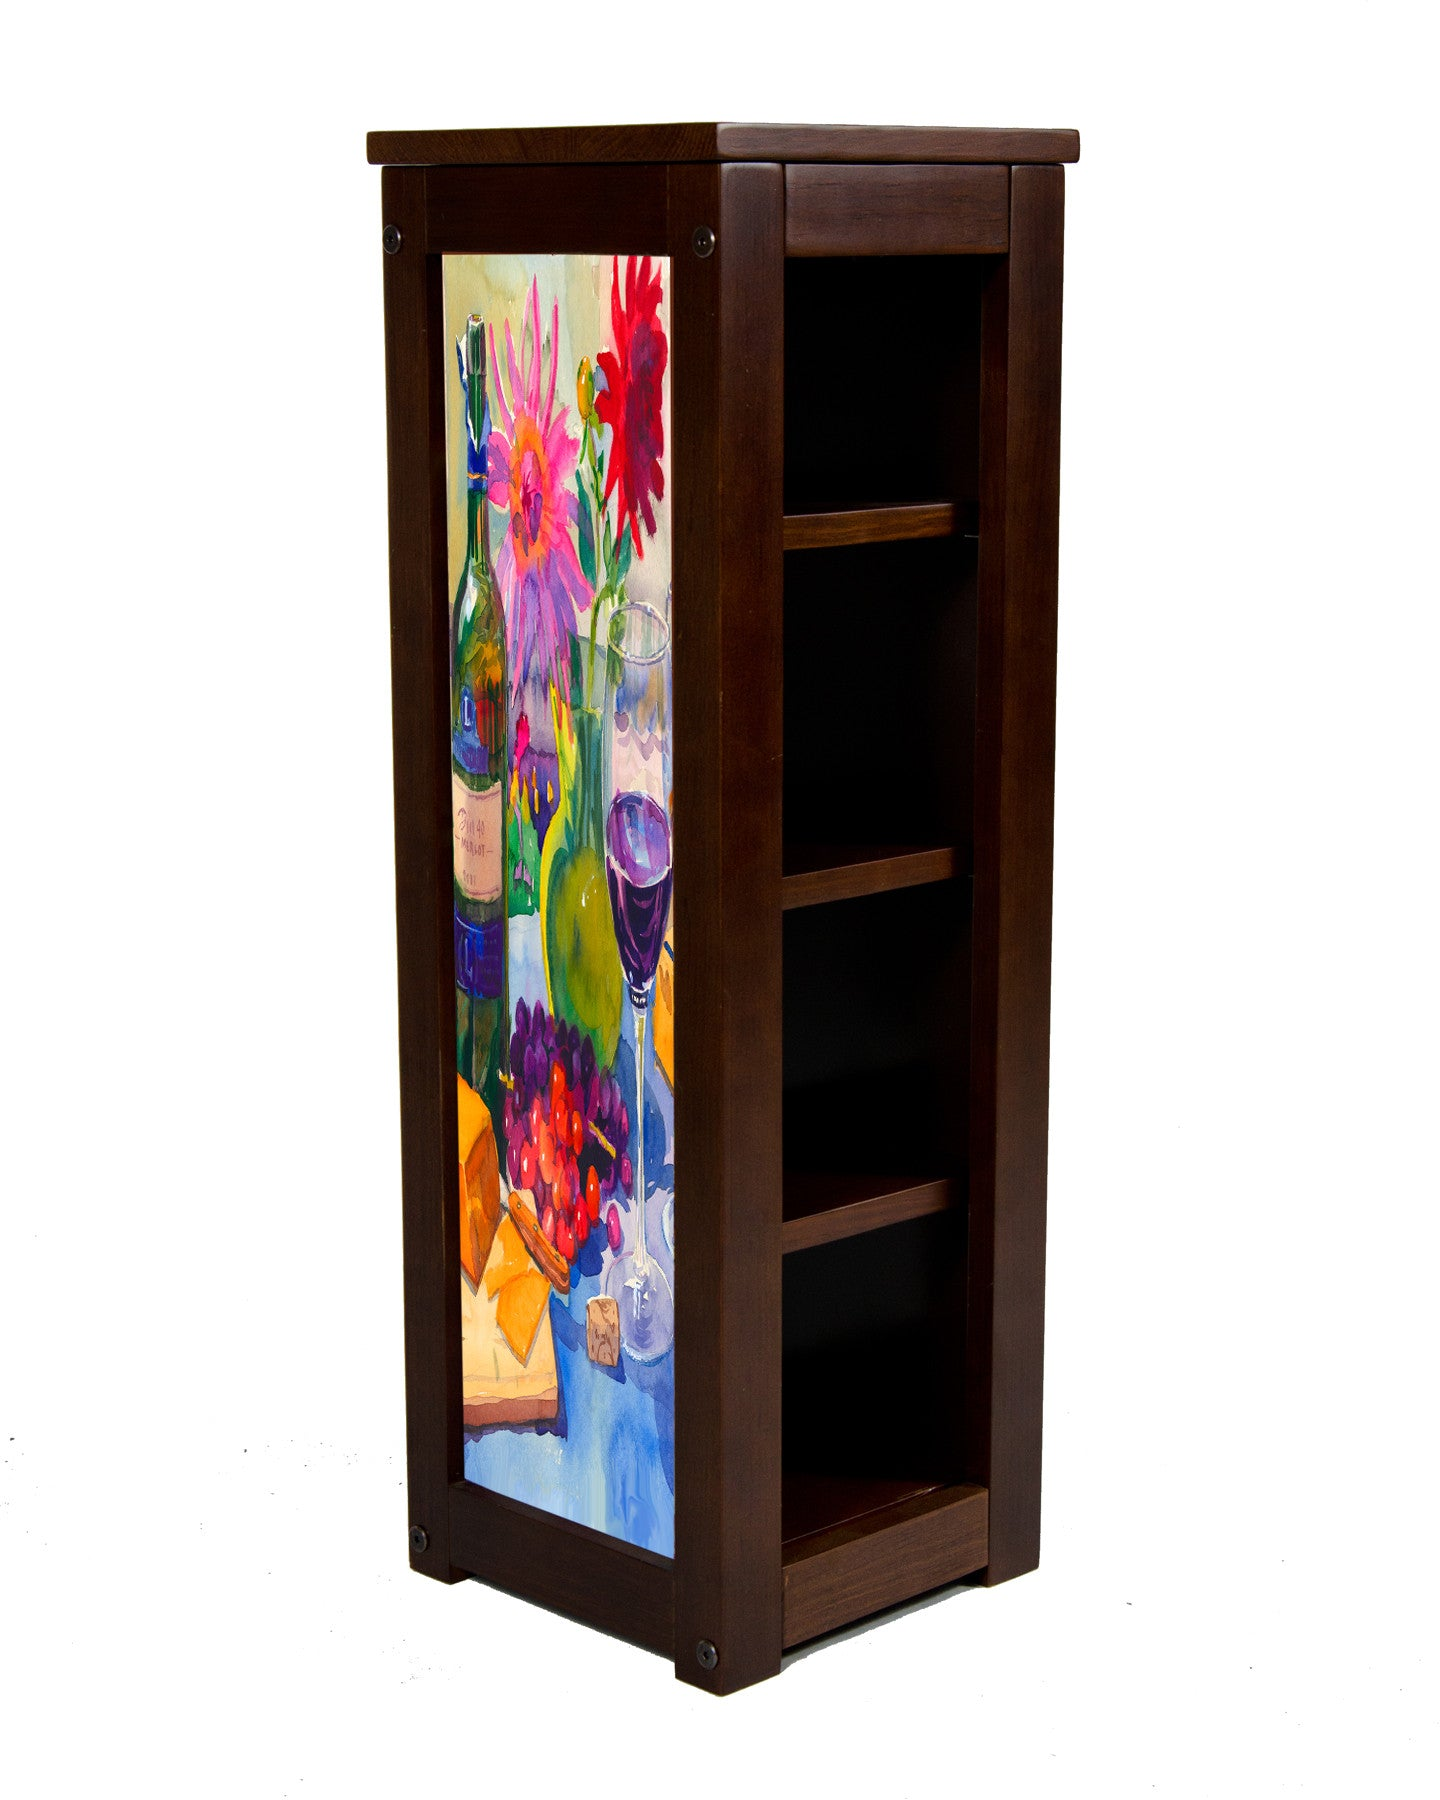 Merlot display case by  Kim Drew